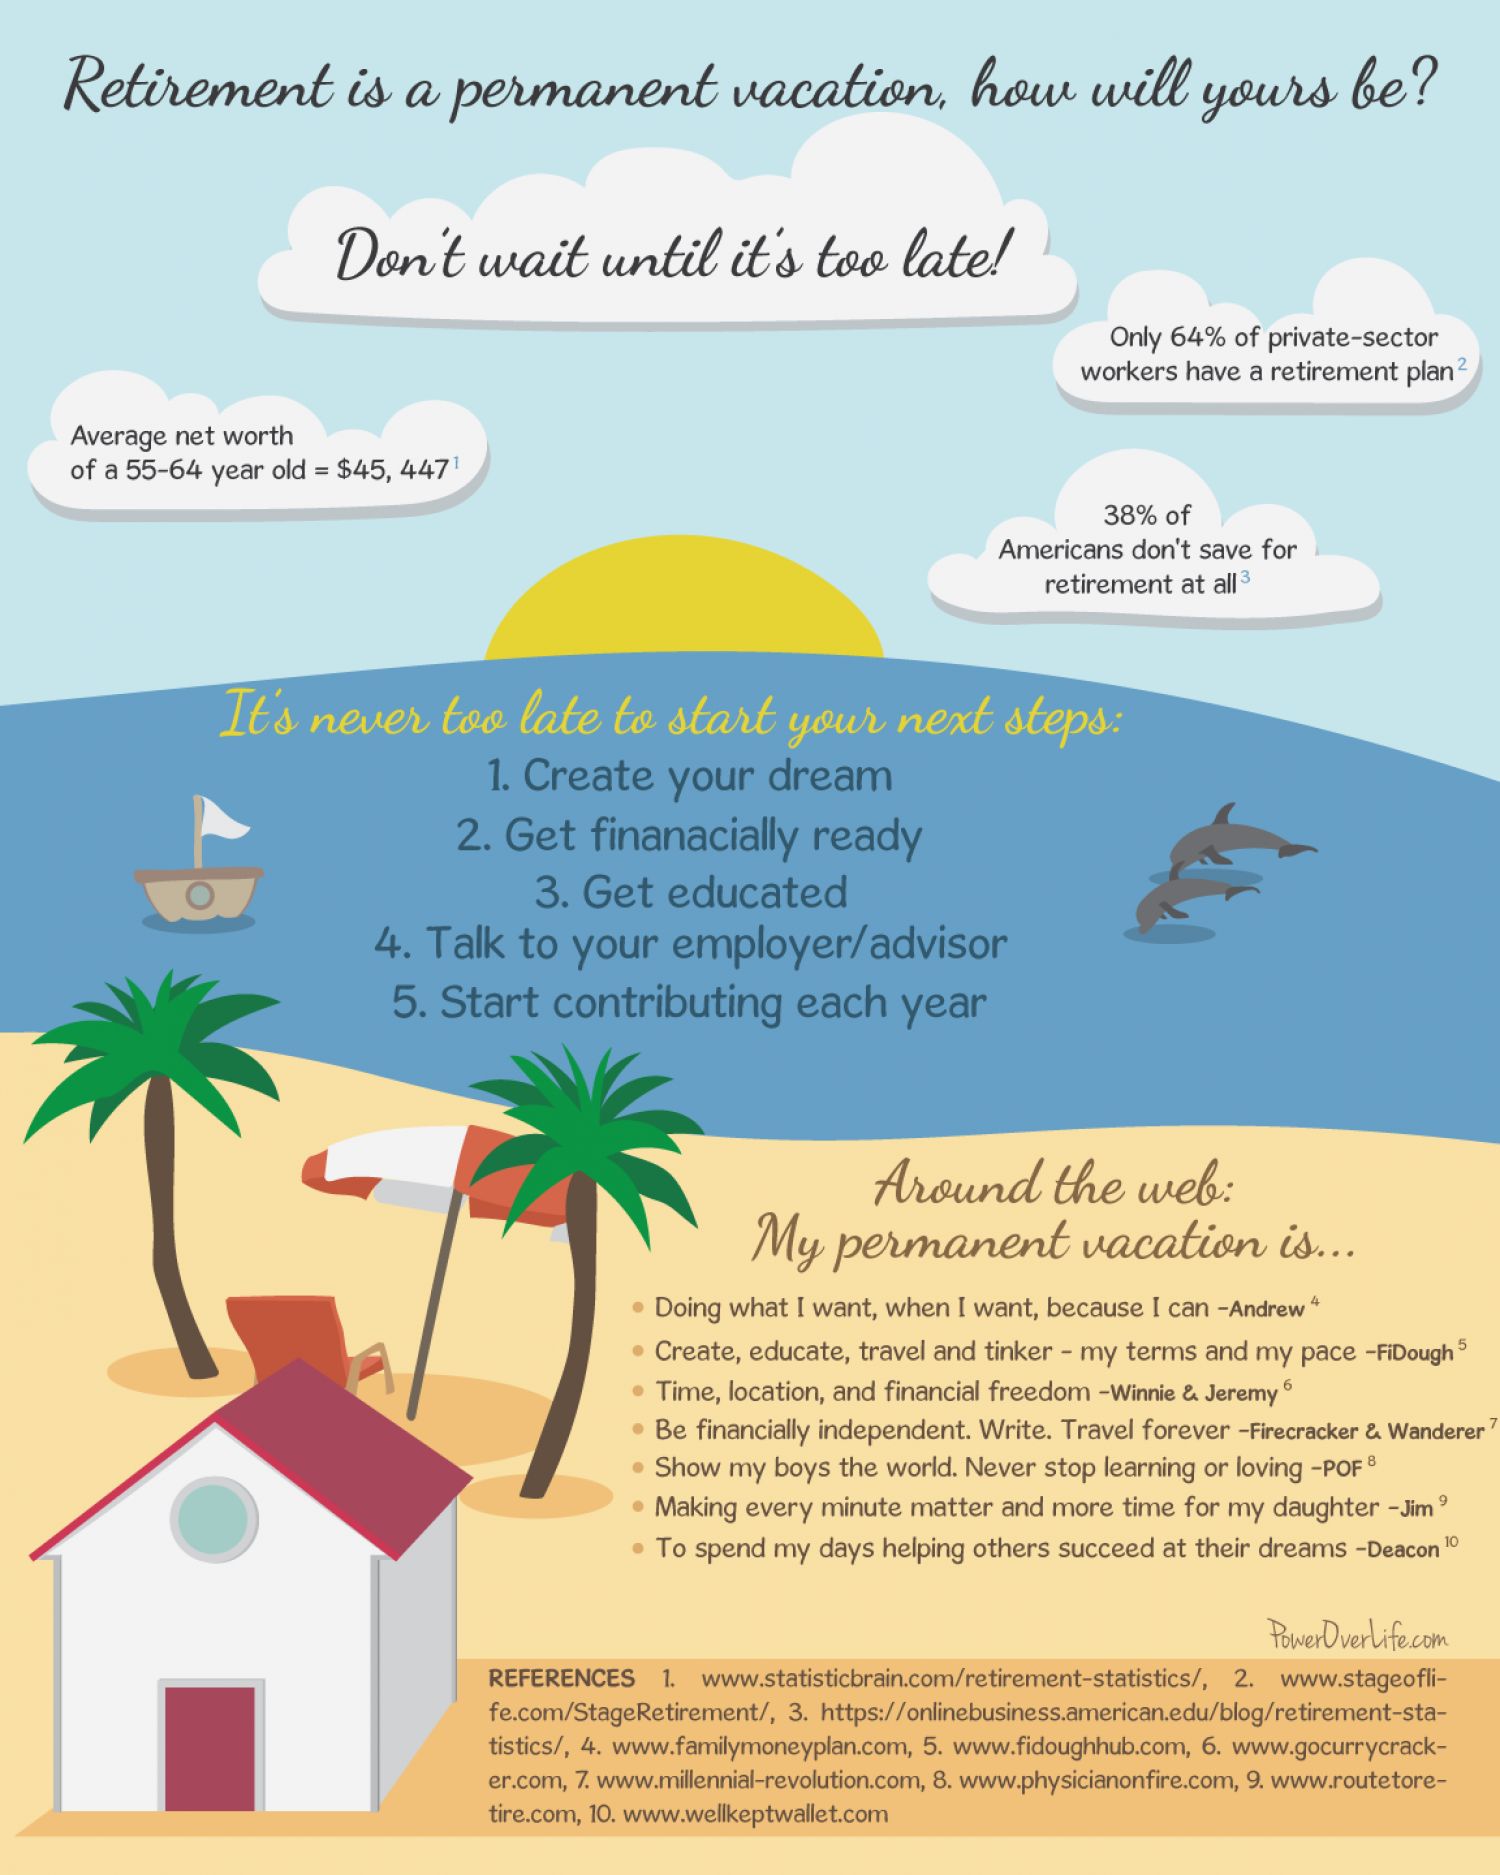 Your Retirement Should Be a Permanent Vacation Infographic